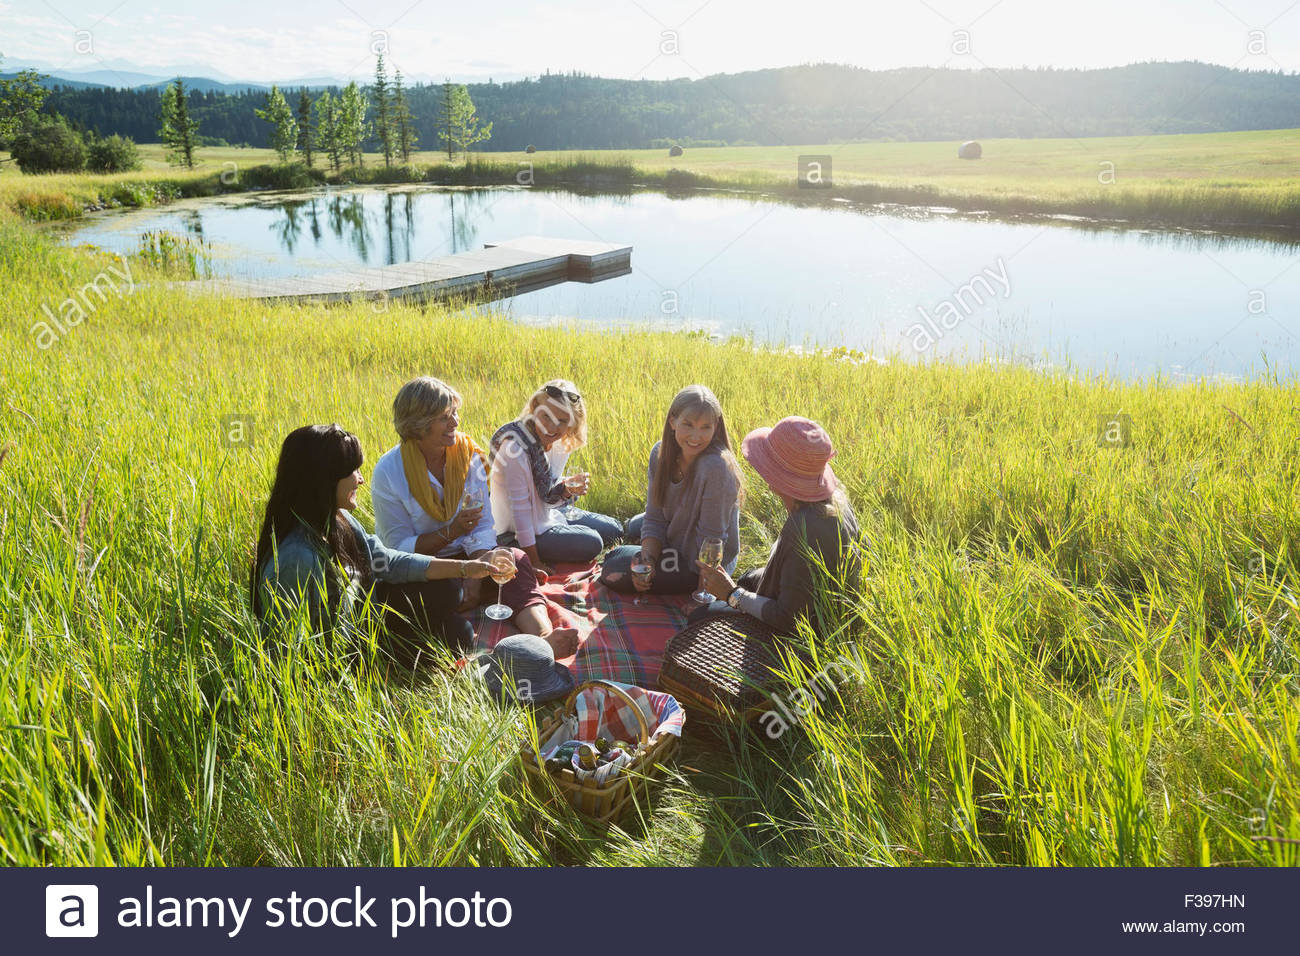 Women enjoying picnic in sunny field near lake - Stock Image